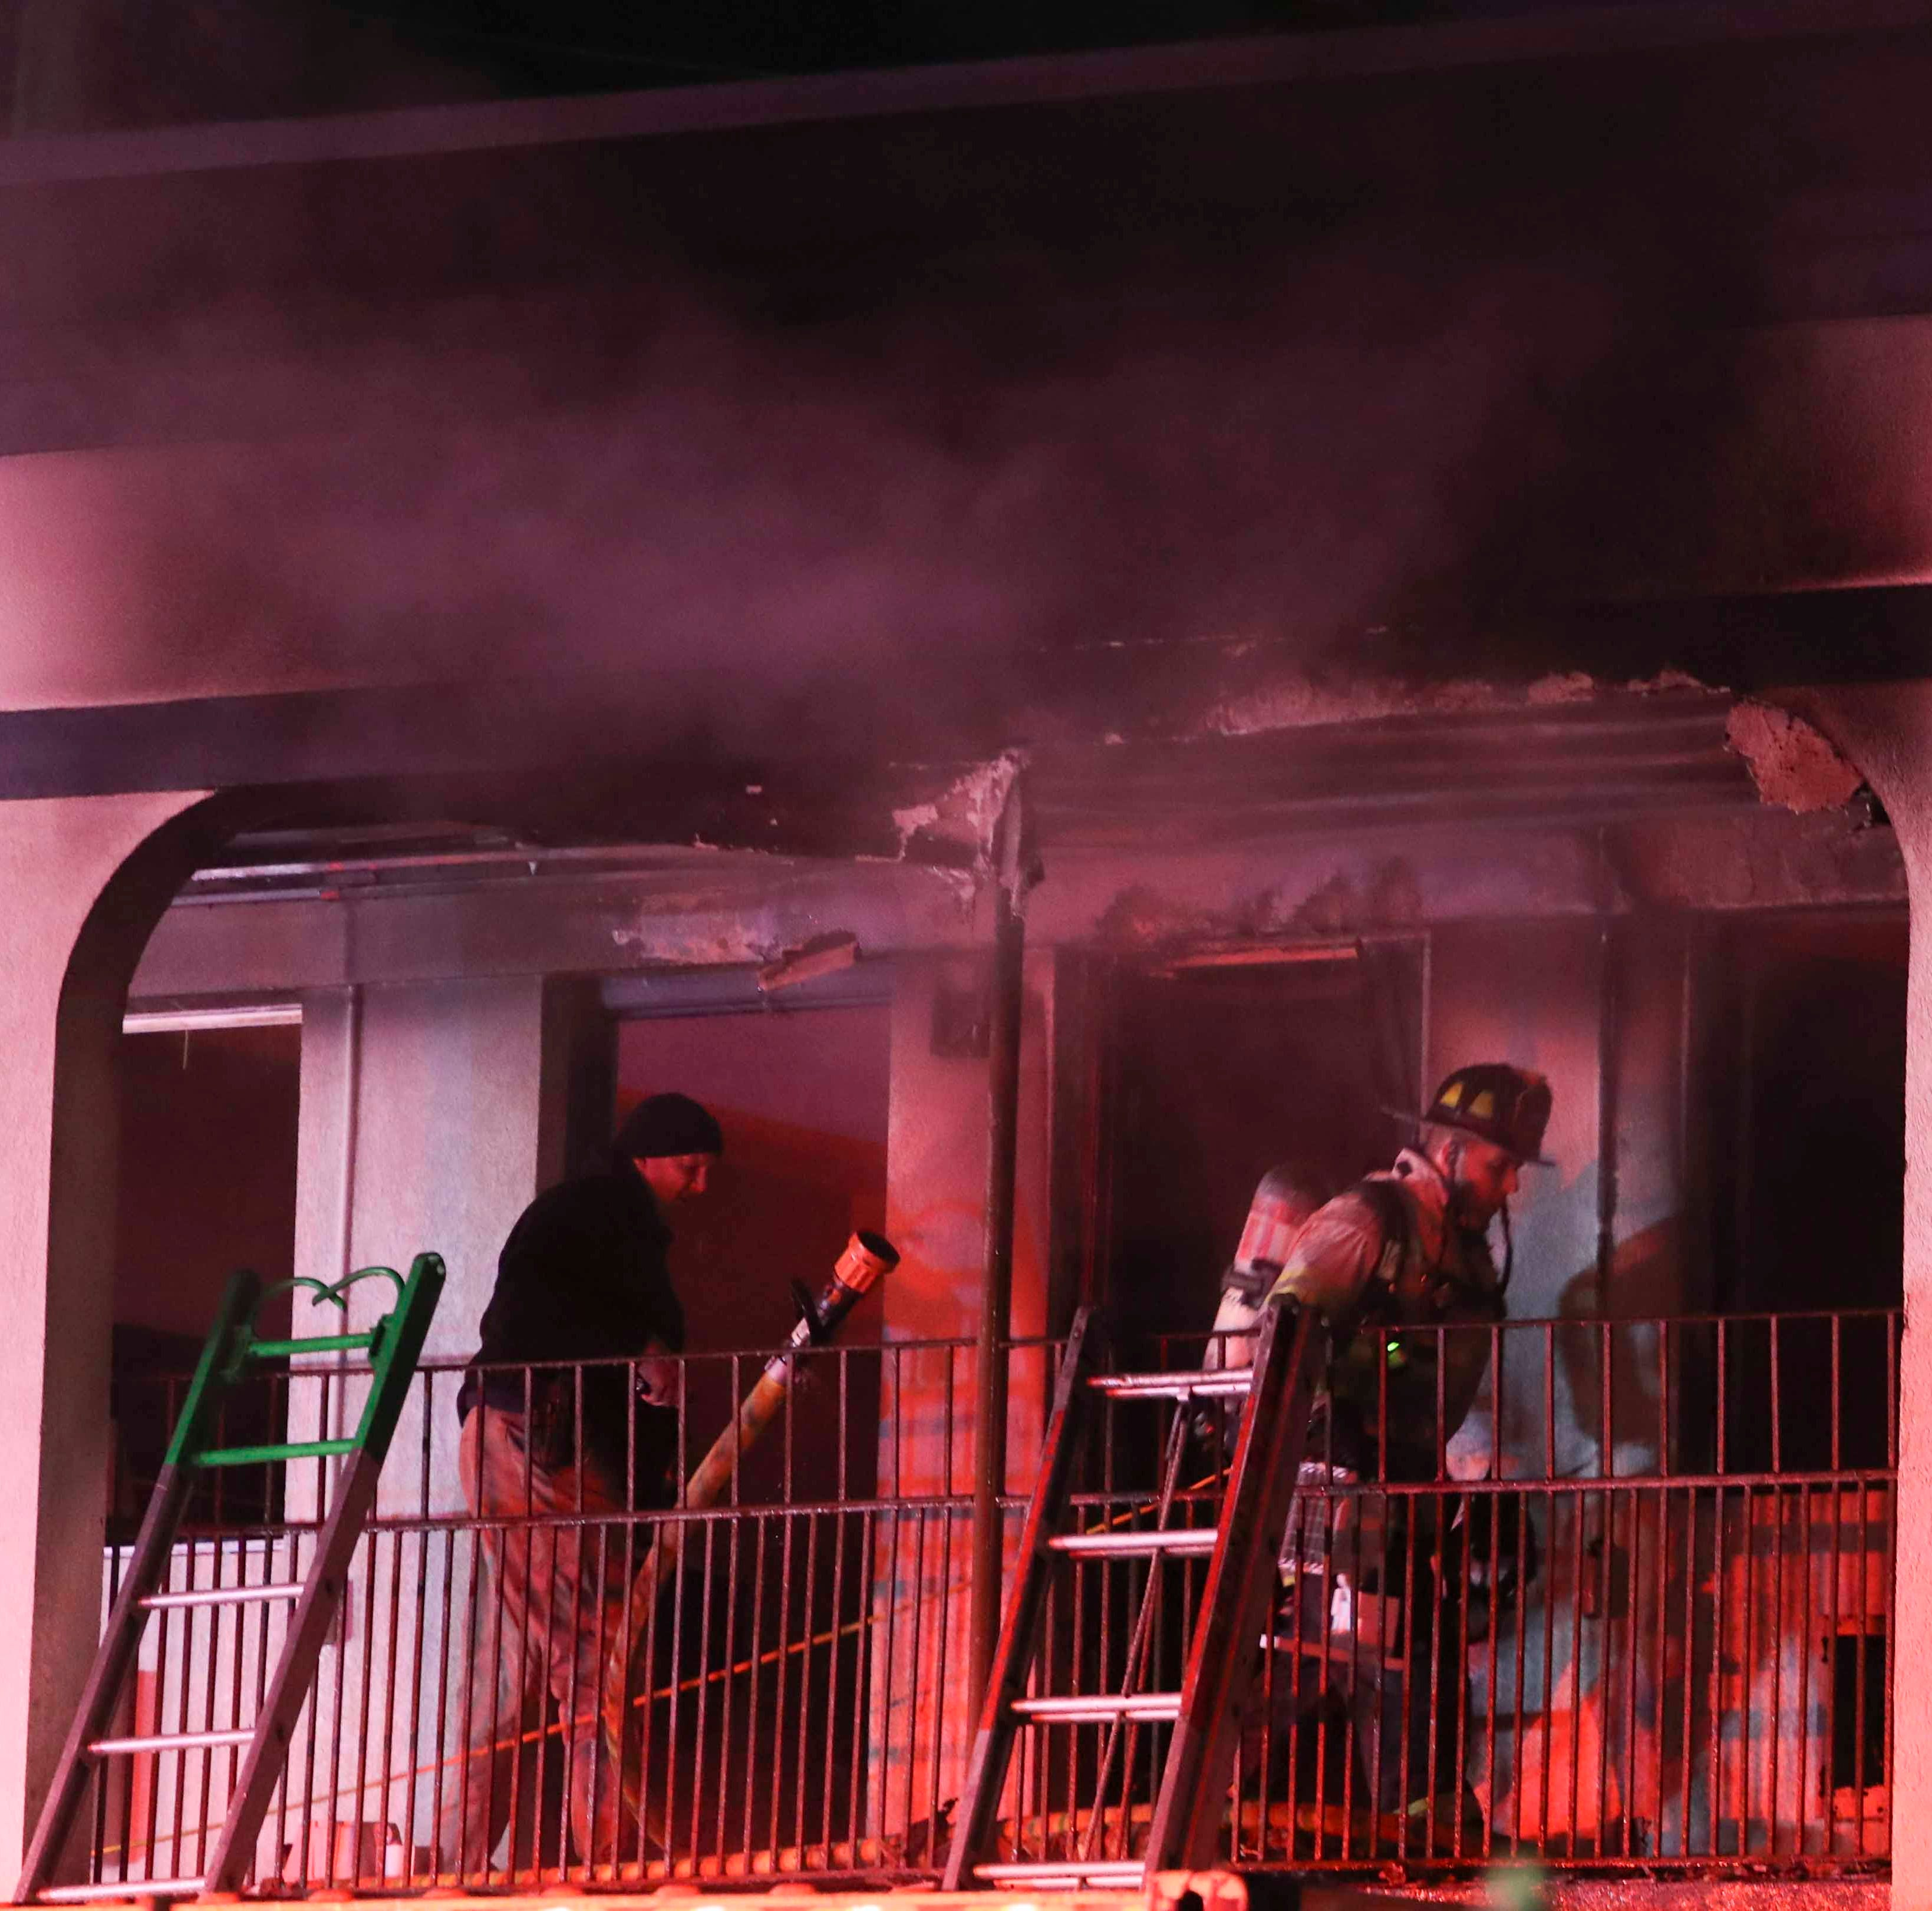 Arson charges filed in Super 8 motel fire in Newark